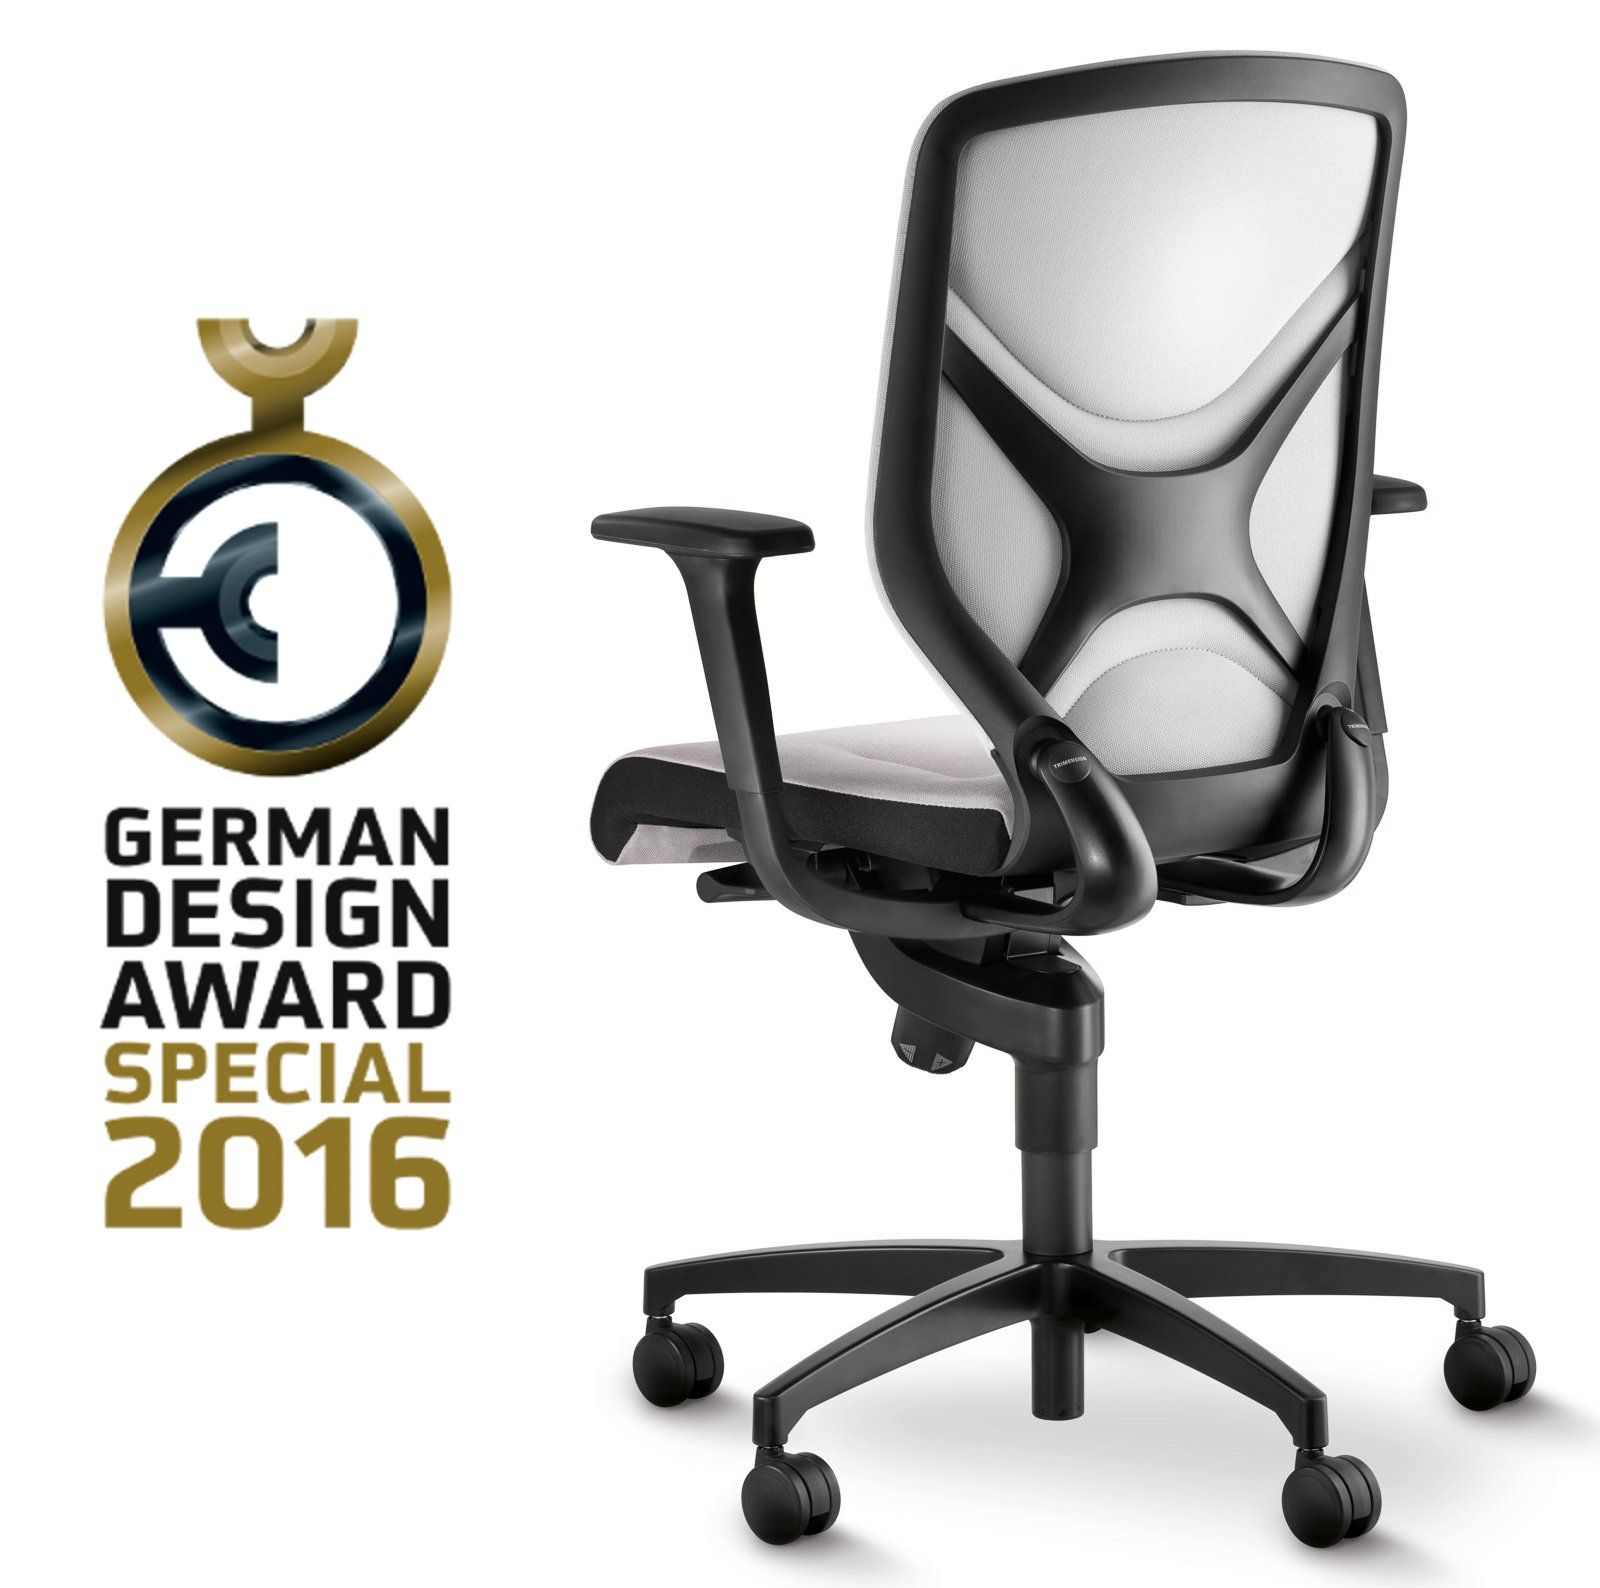 Furniture Design Award 2016 awarded with the german design award 2016 special mention